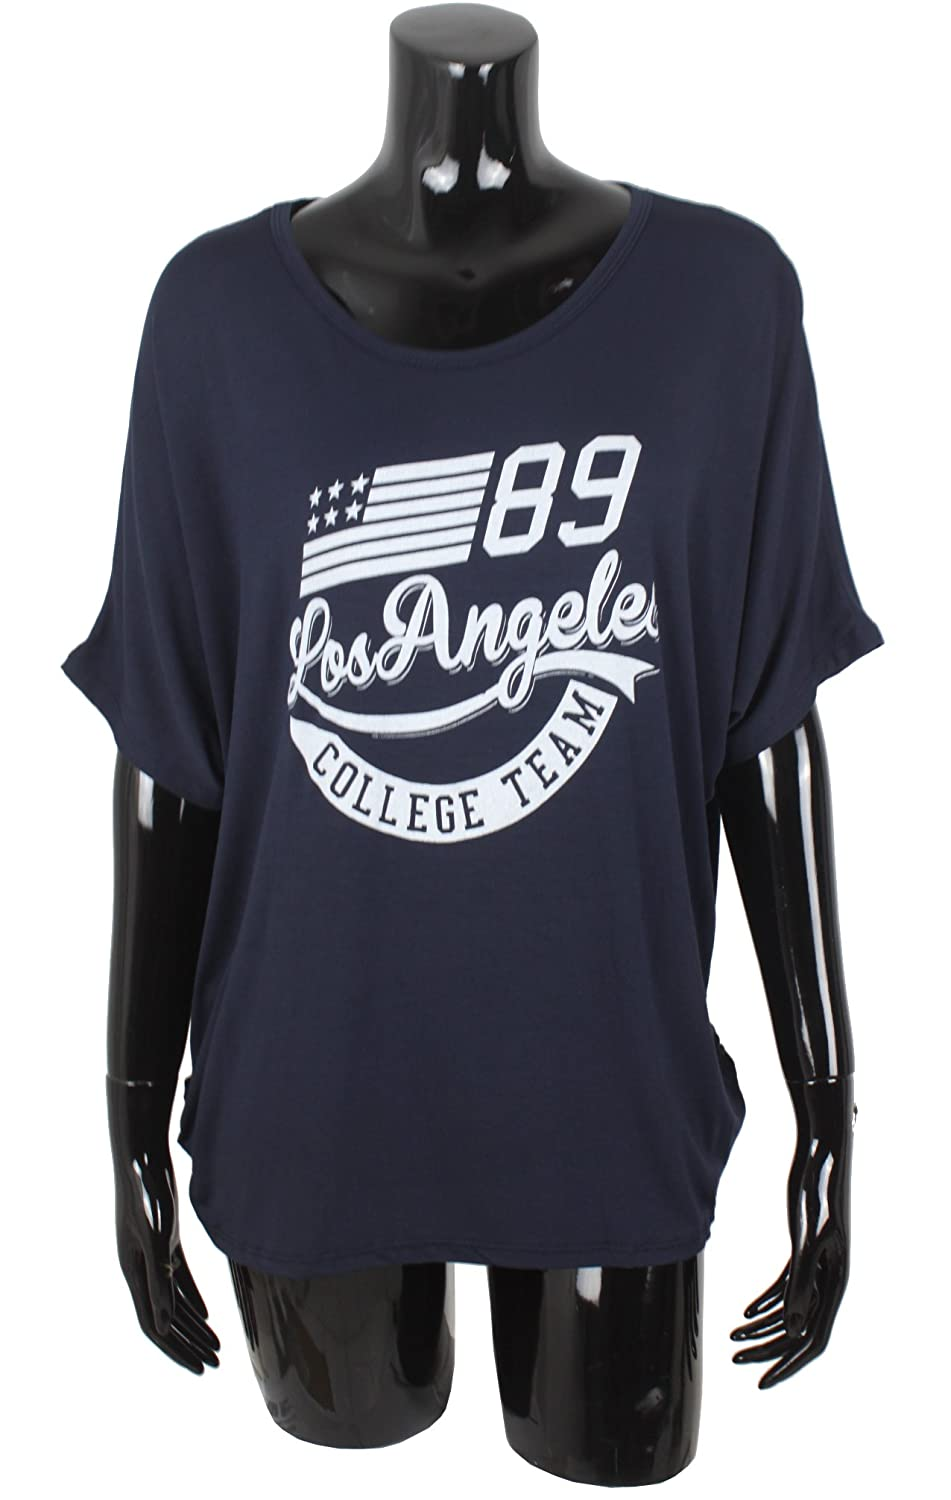 Emma /& Giovanni Oversize T-Shirt//Top Los Angeles Donna